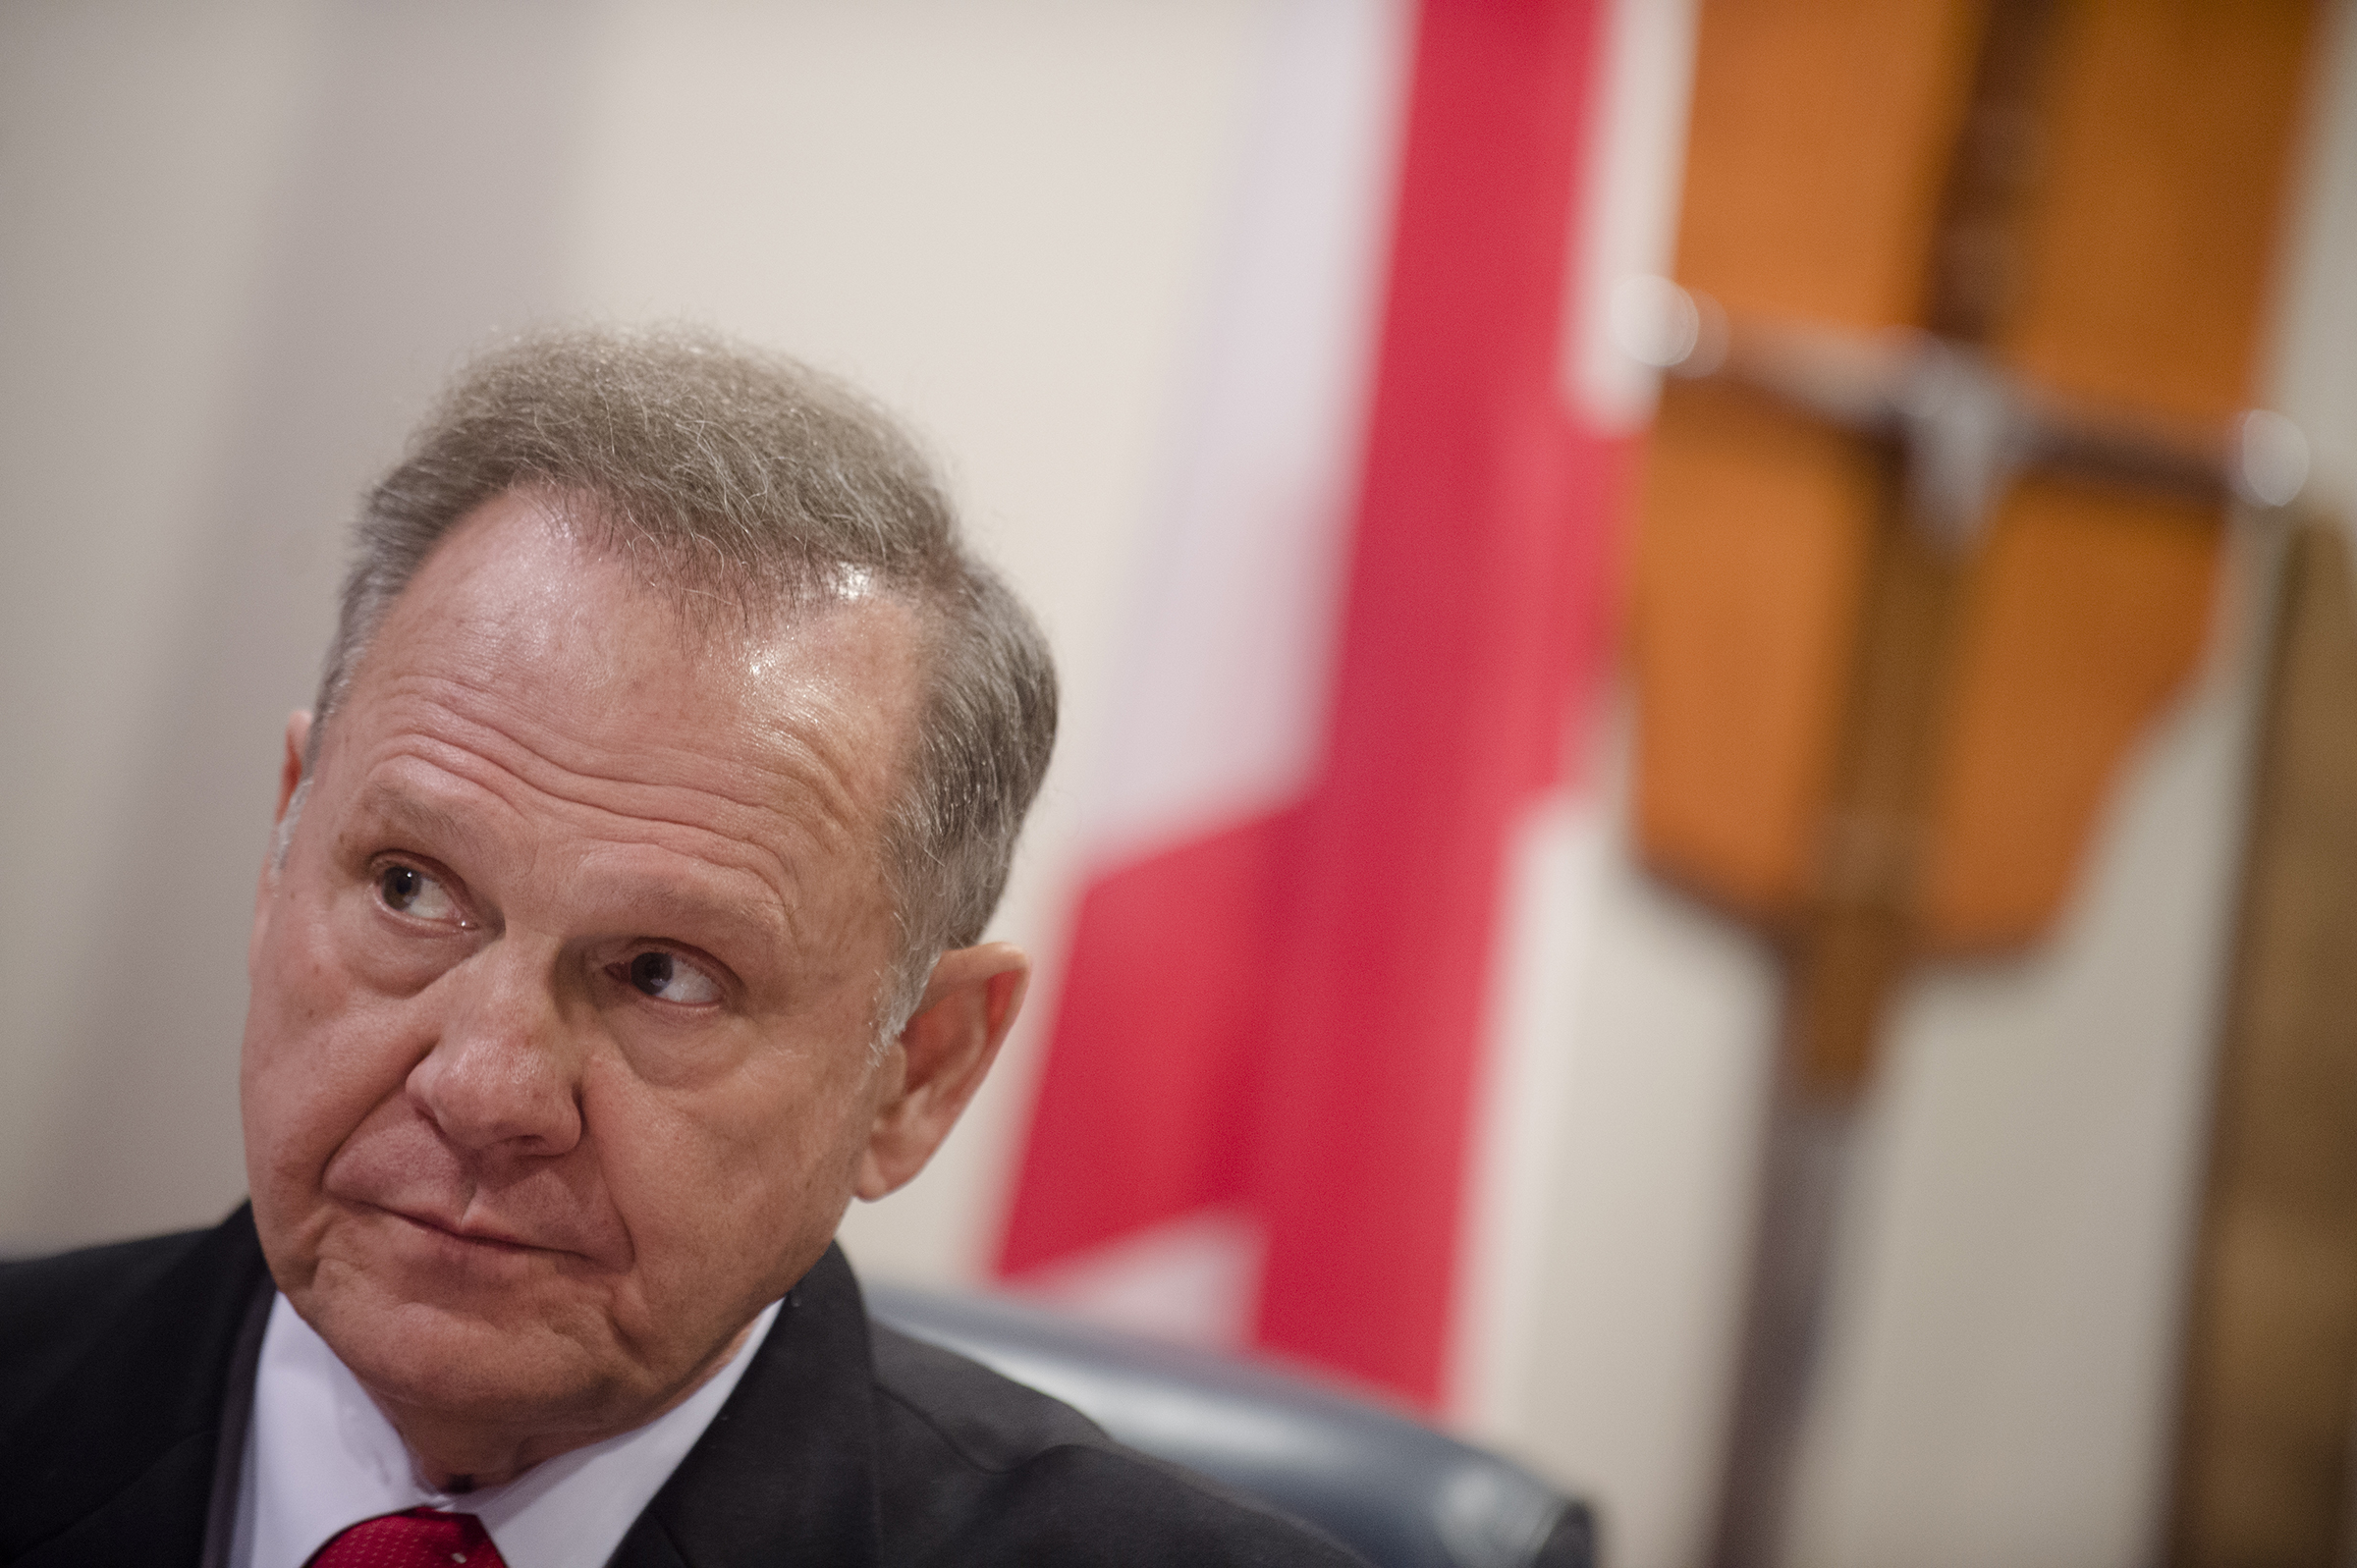 Alabama Chief Justice Roy Moore talks about his administrative order discouraging probate judges from issuing same sex marriage licenses, at the Alabama Supreme Court building in Montgomery, Ala. on Jan. 6, 2016.